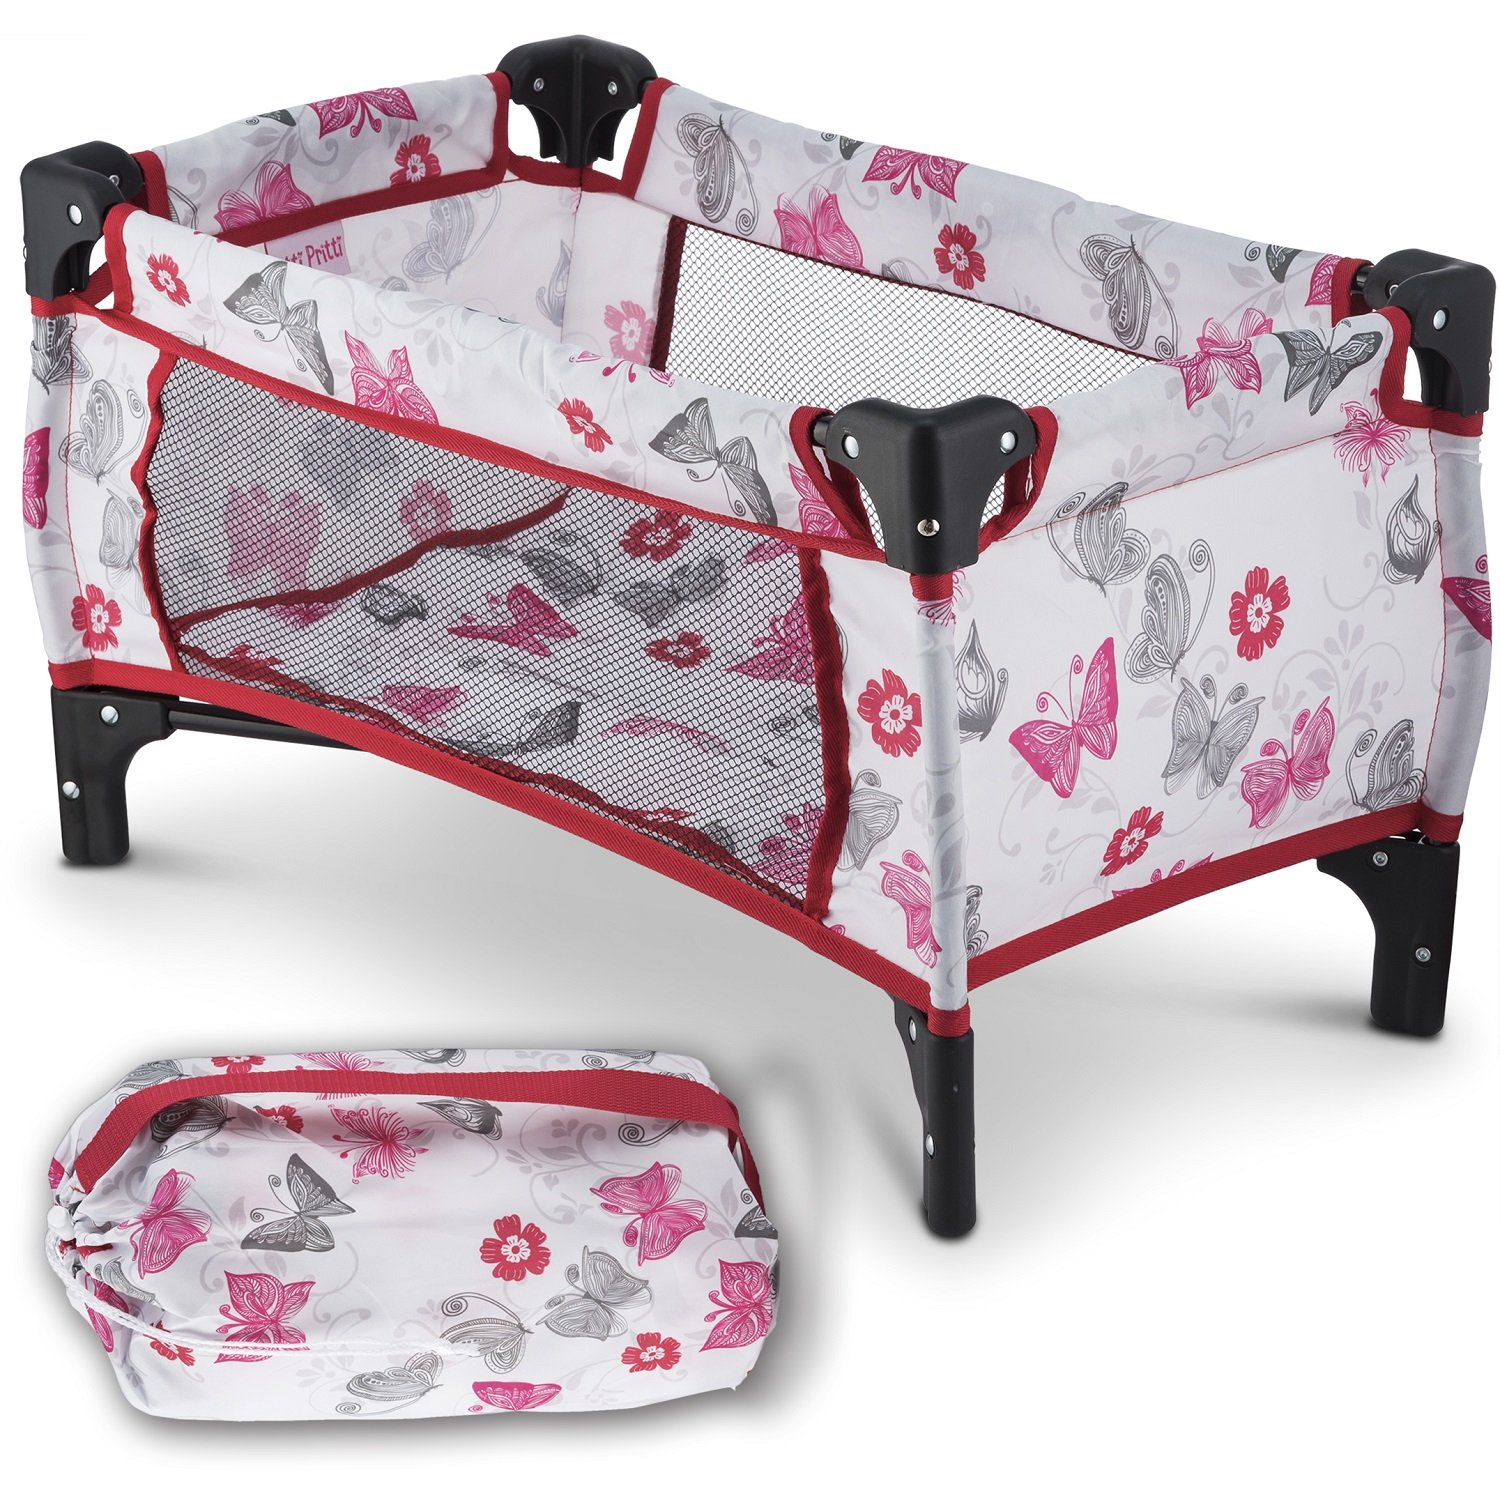 Litti Pritti Take Along Travel Crib Pack and Play Accessory for Dolls - Perfect for 18 Dolls